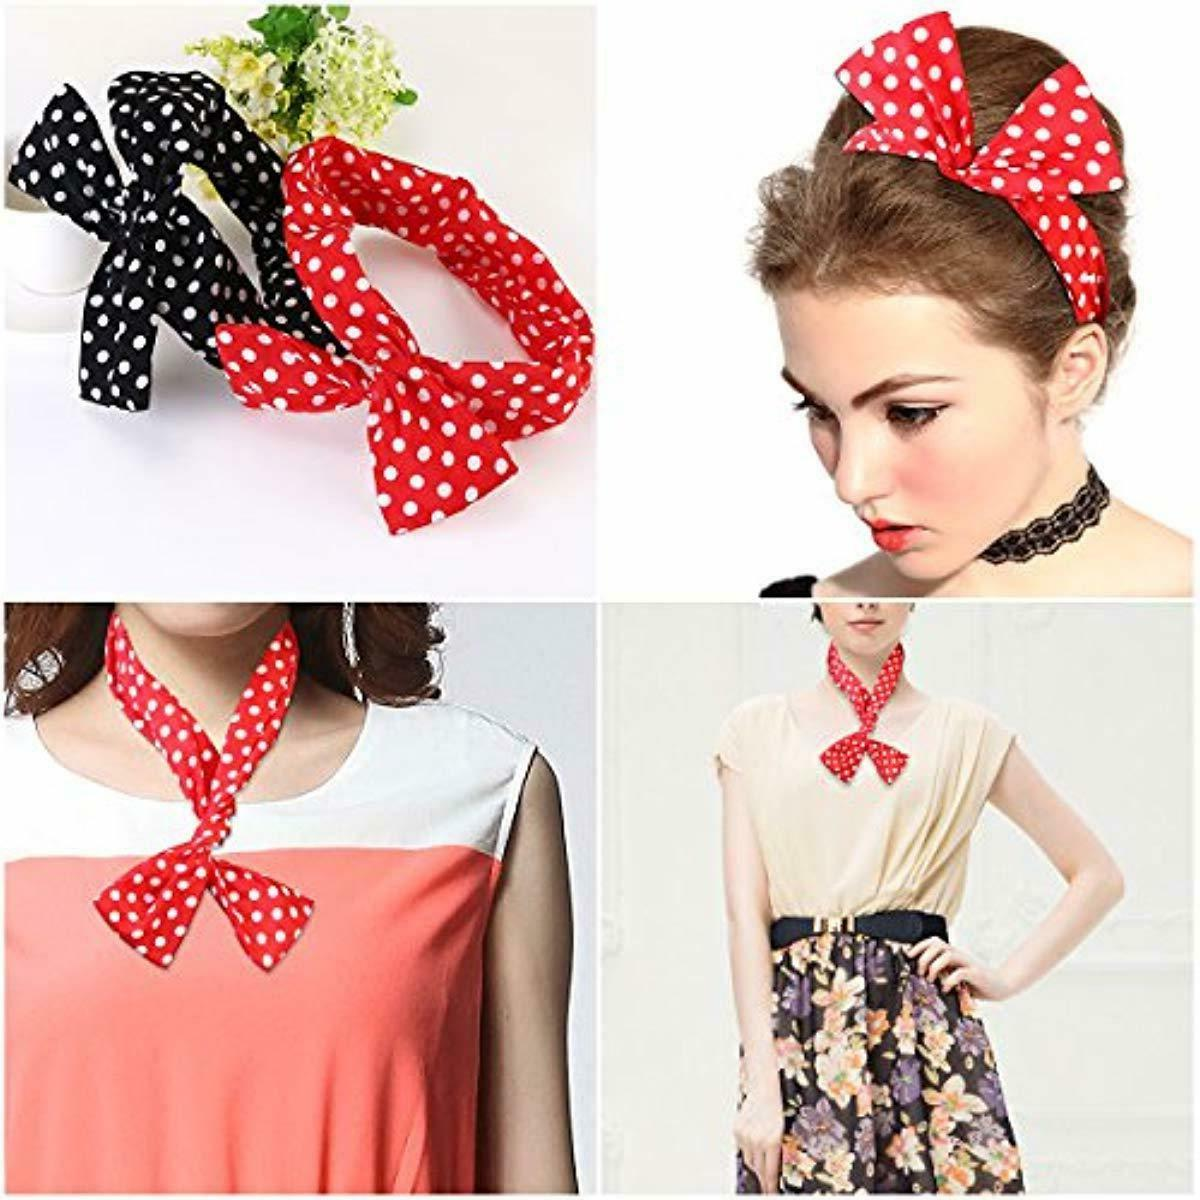 PIXNOR Retro Bowknot Polka Dot Wire and Gir